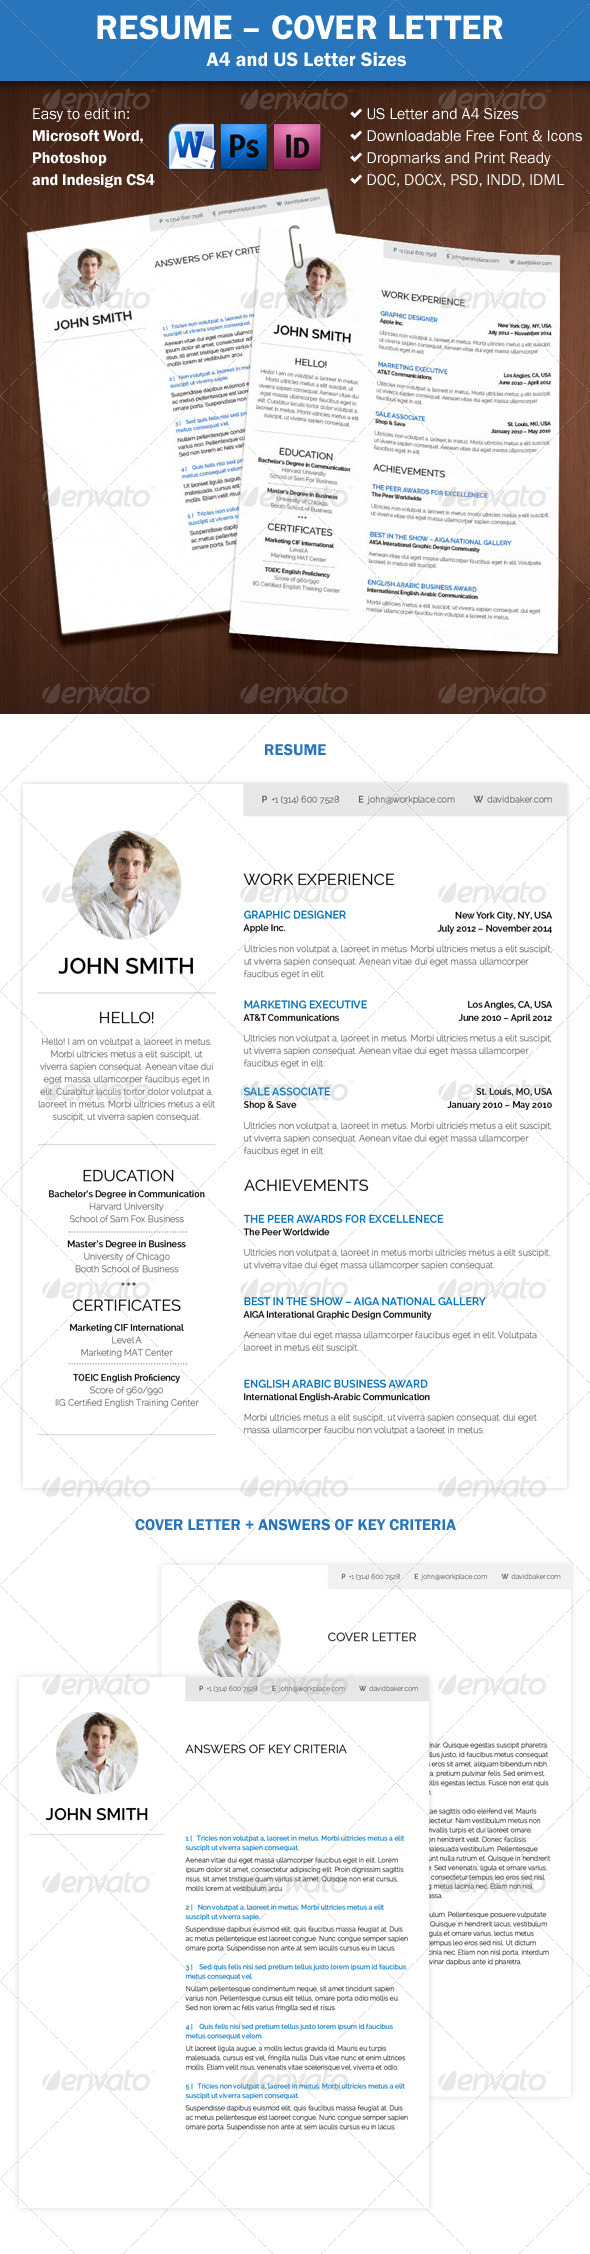 GraphicRiver Resume Cover Letter A4 and Us Letter Sizes 7696935